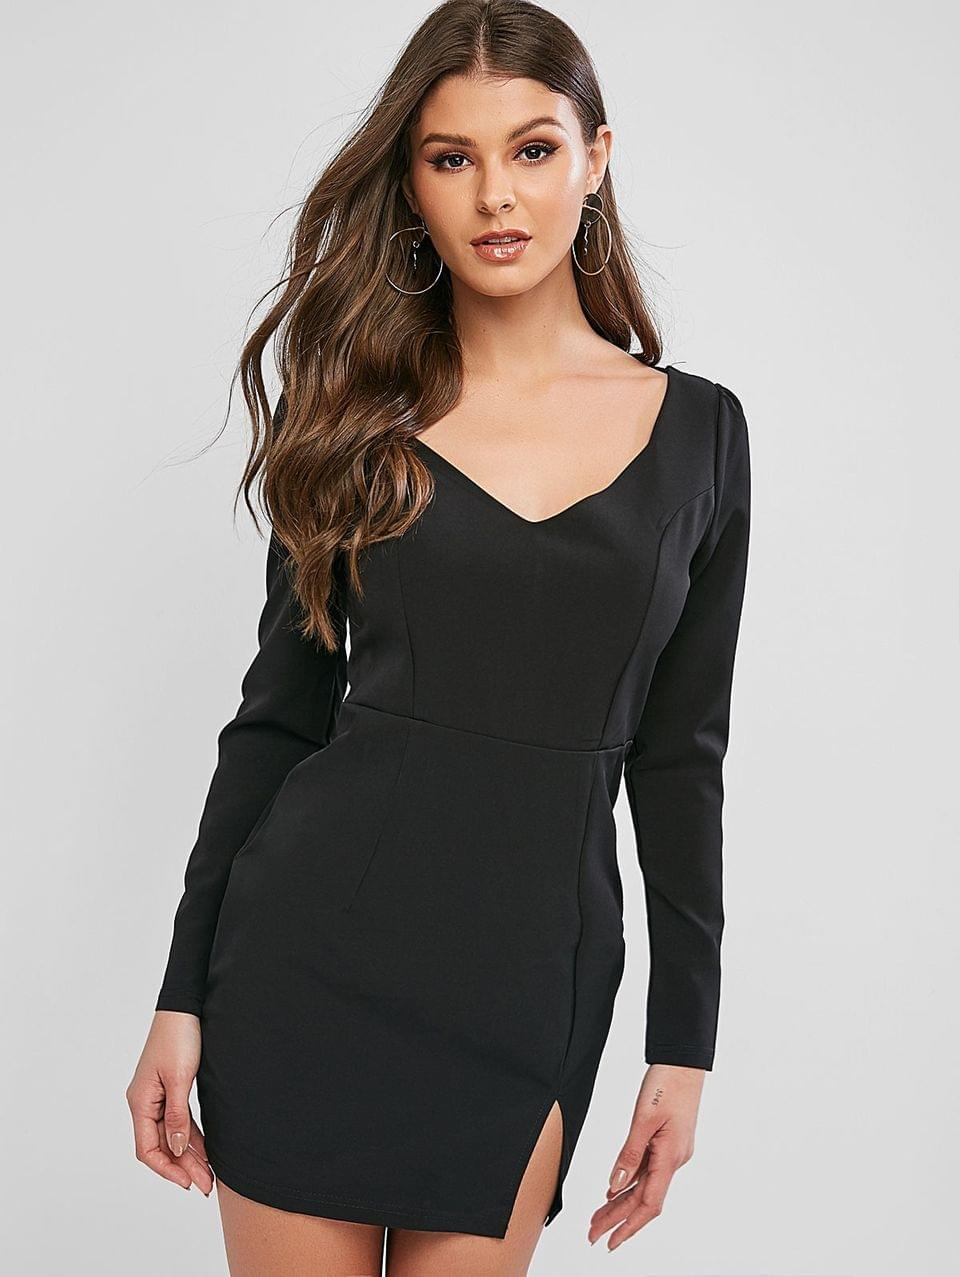 Women's V Neck Slit Solid Sheath Dress - Black M